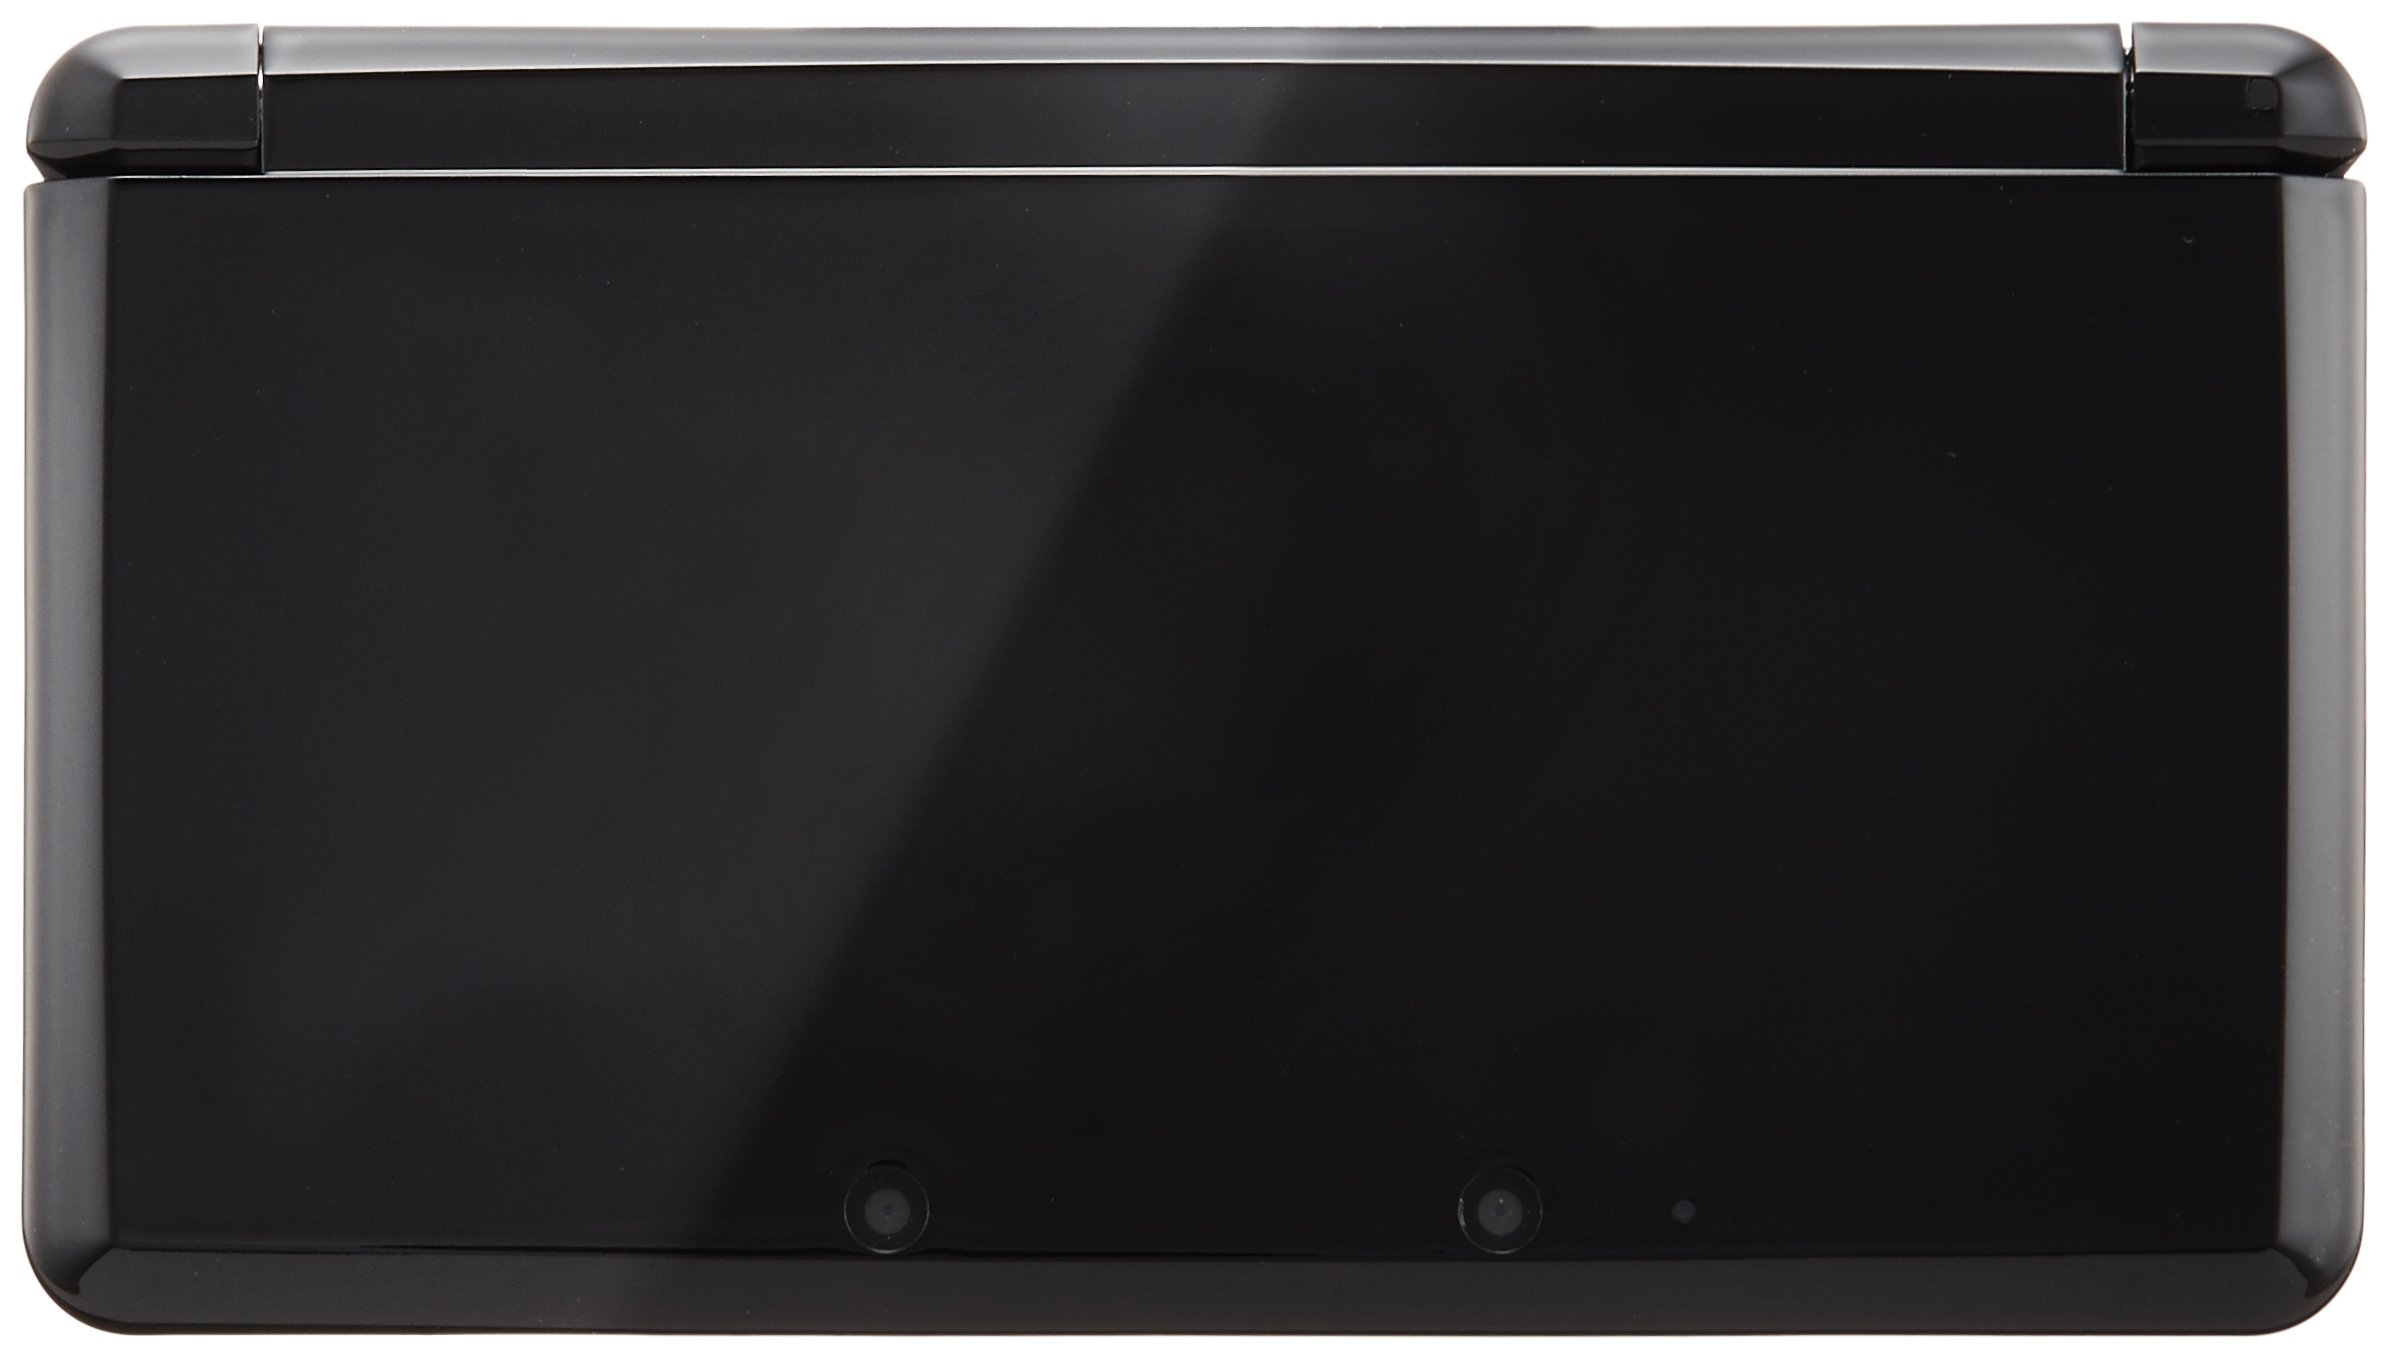 Nintendo 3DS clear black (Japanese Imported Version - only plays Japanese version games) by Nintendo (Image #2)